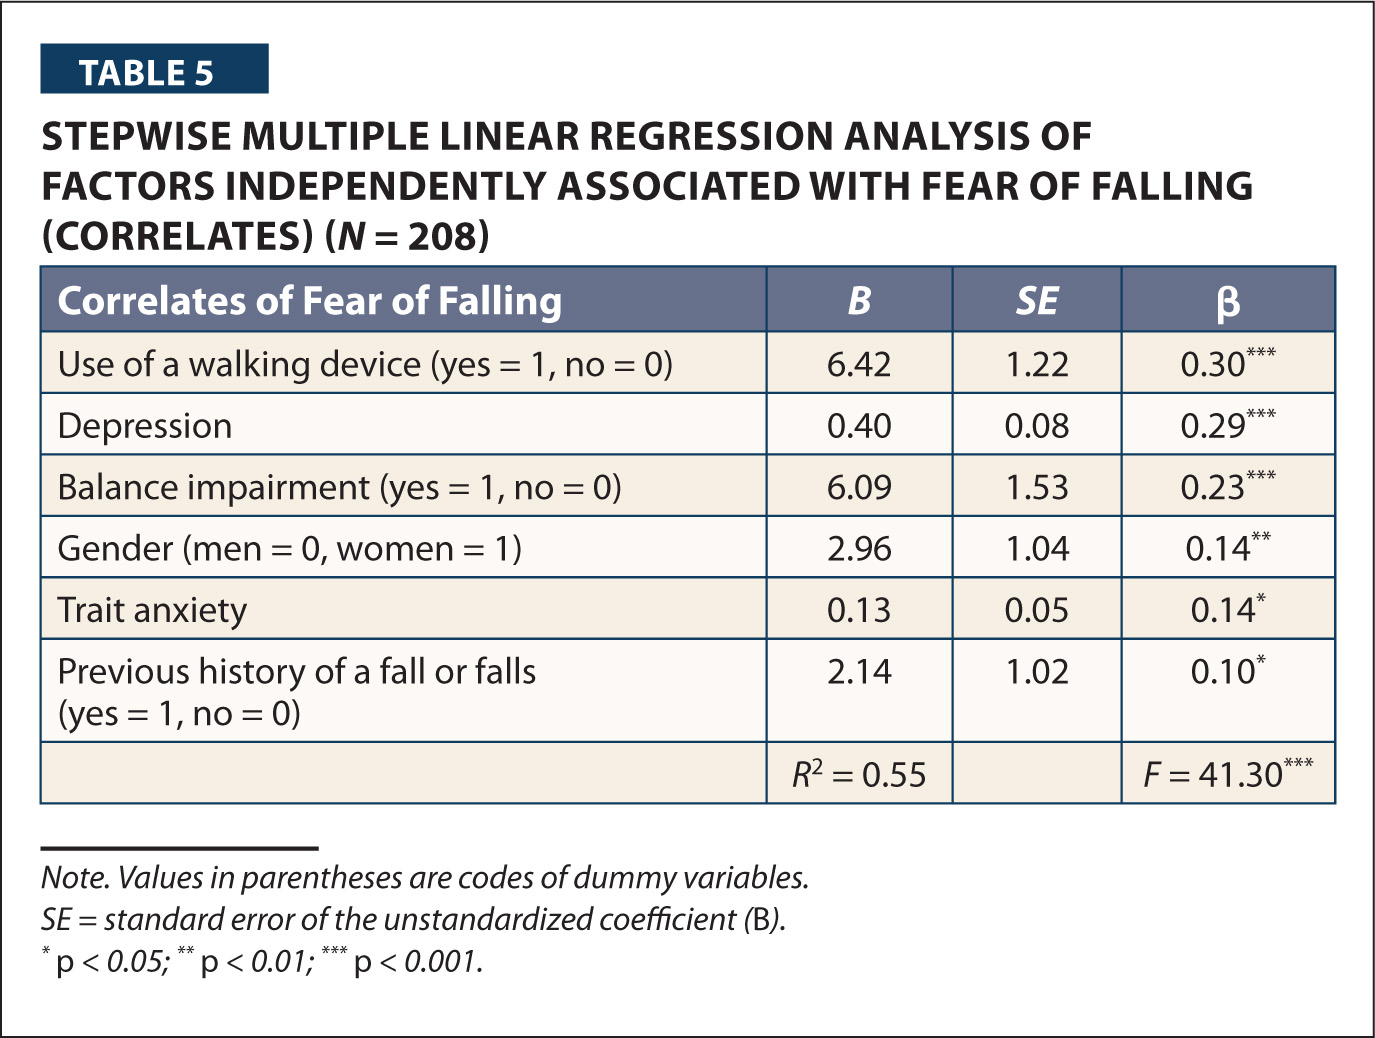 Stepwise Multiple Linear Regression Analysis of Factors Independently Associated with Fear of Falling (correlates) (N = 208)